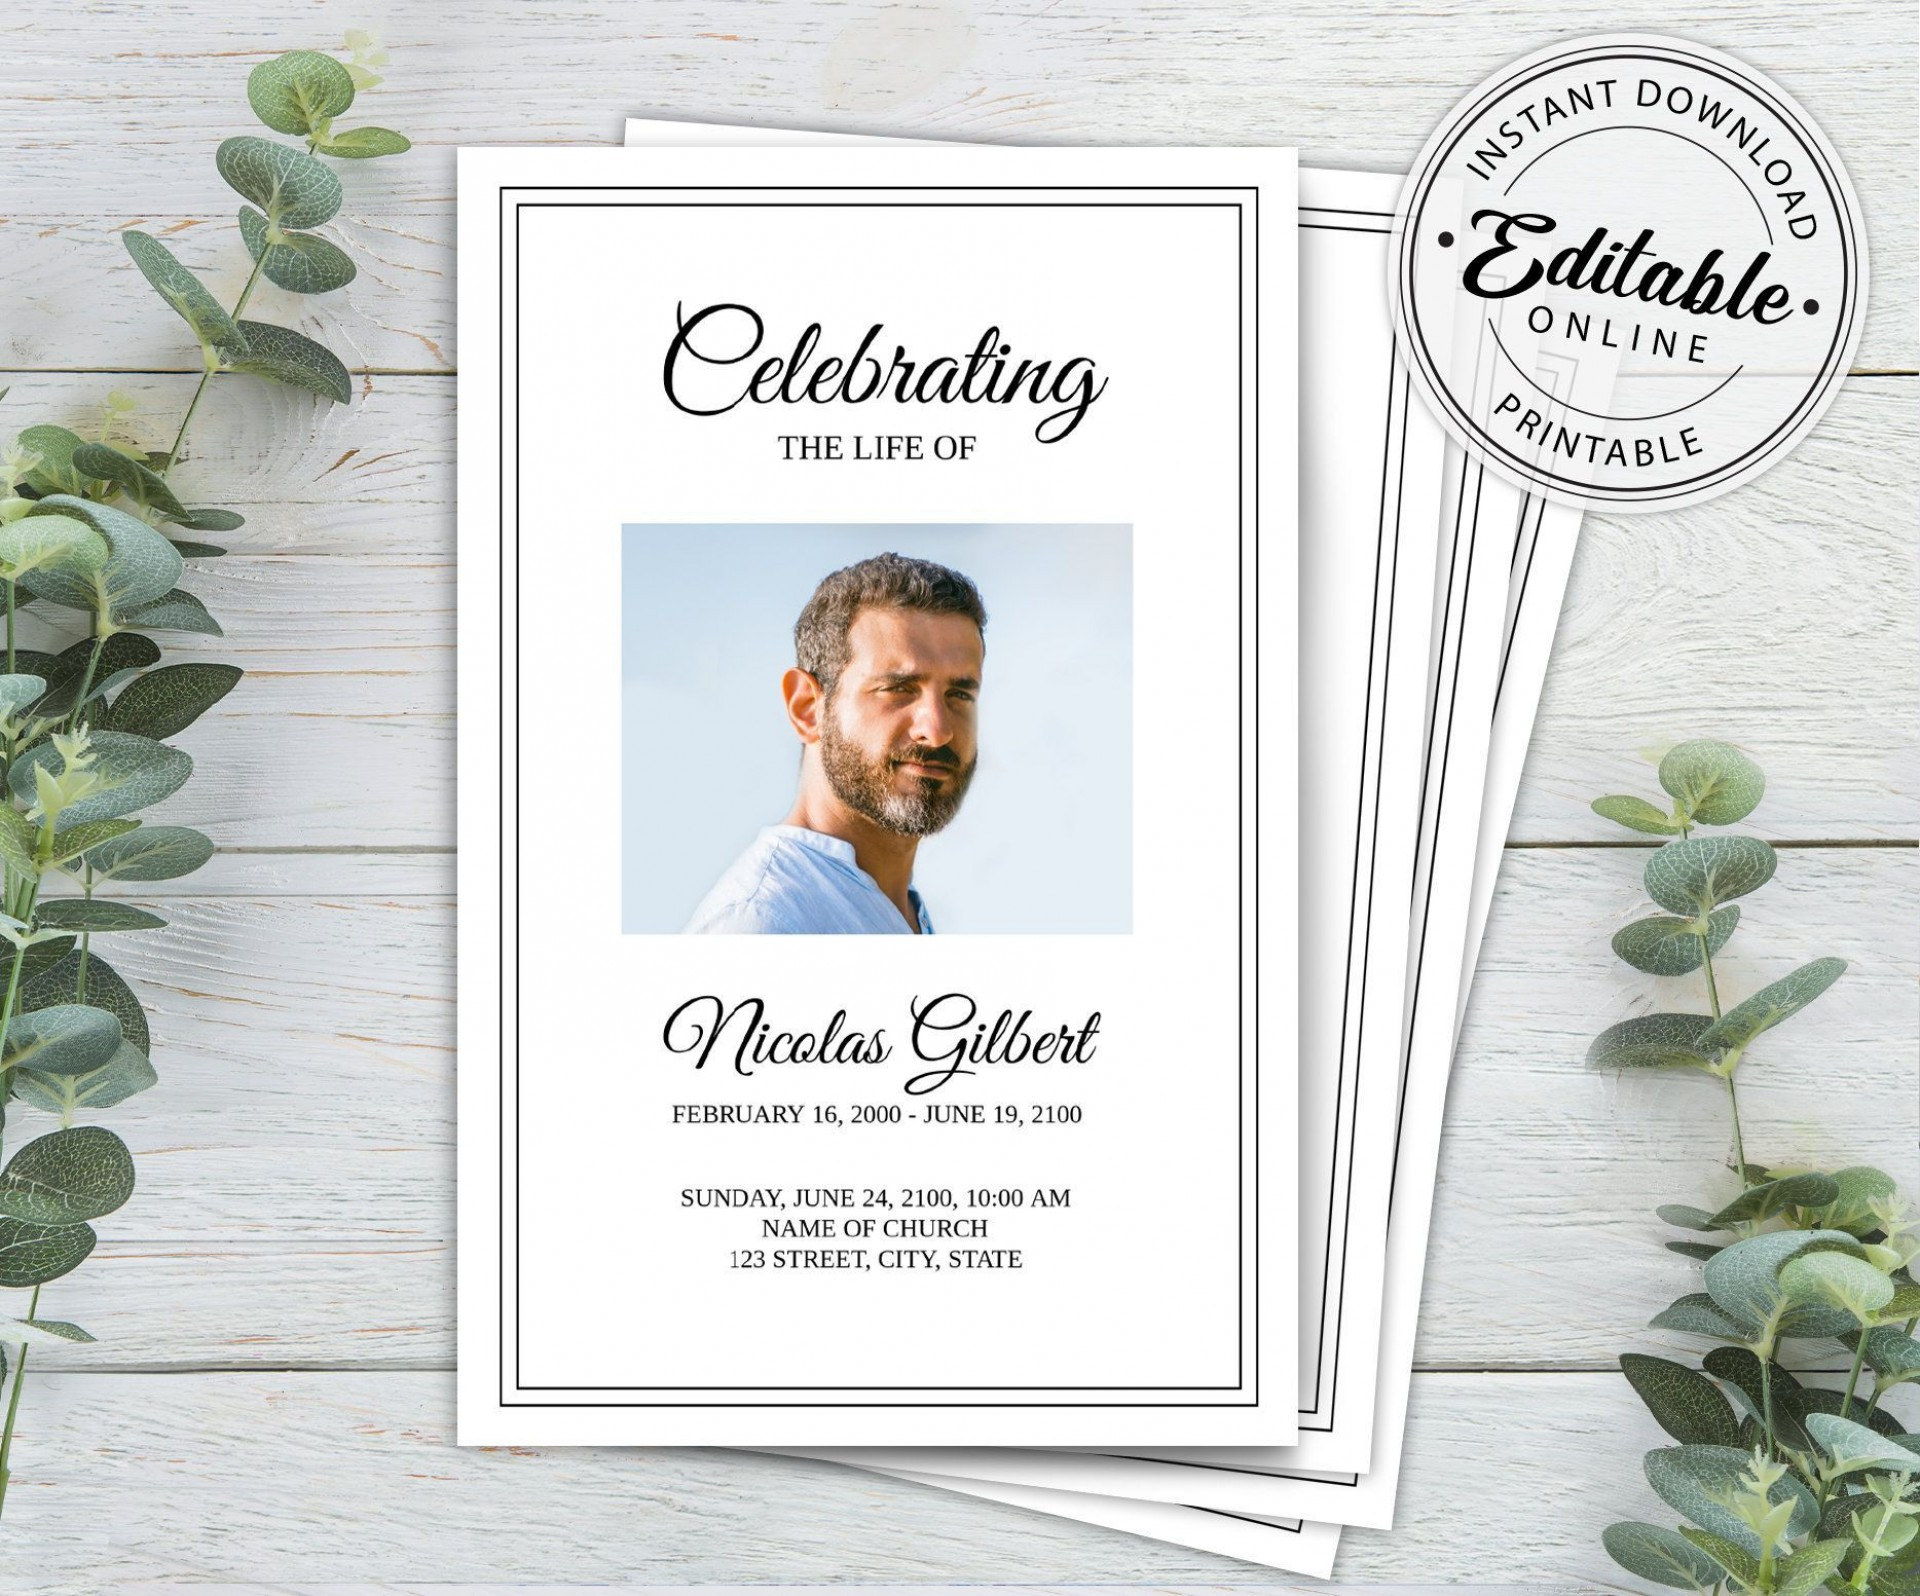 002 Wondrou Celebration Of Life Template Highest Clarity  Powerpoint Program Download Announcement Free1920